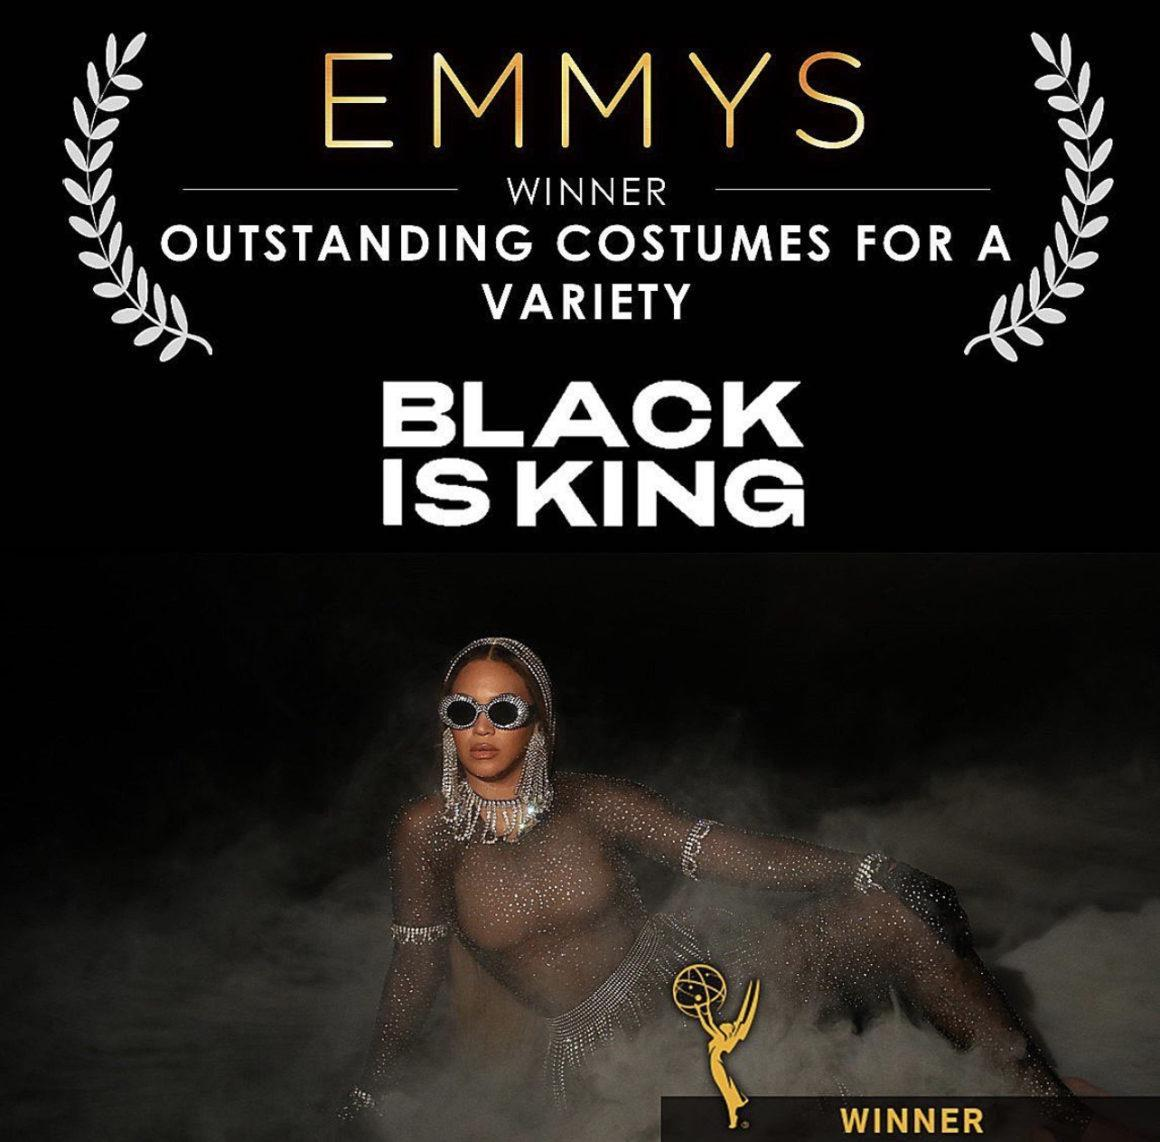 Beyoncé's 'Black Is King' Wins 2021 Emmy Award for 'Outstanding Costume for a Variety': Zerina Akers Becomes Second Black Woman in History to Win the Award